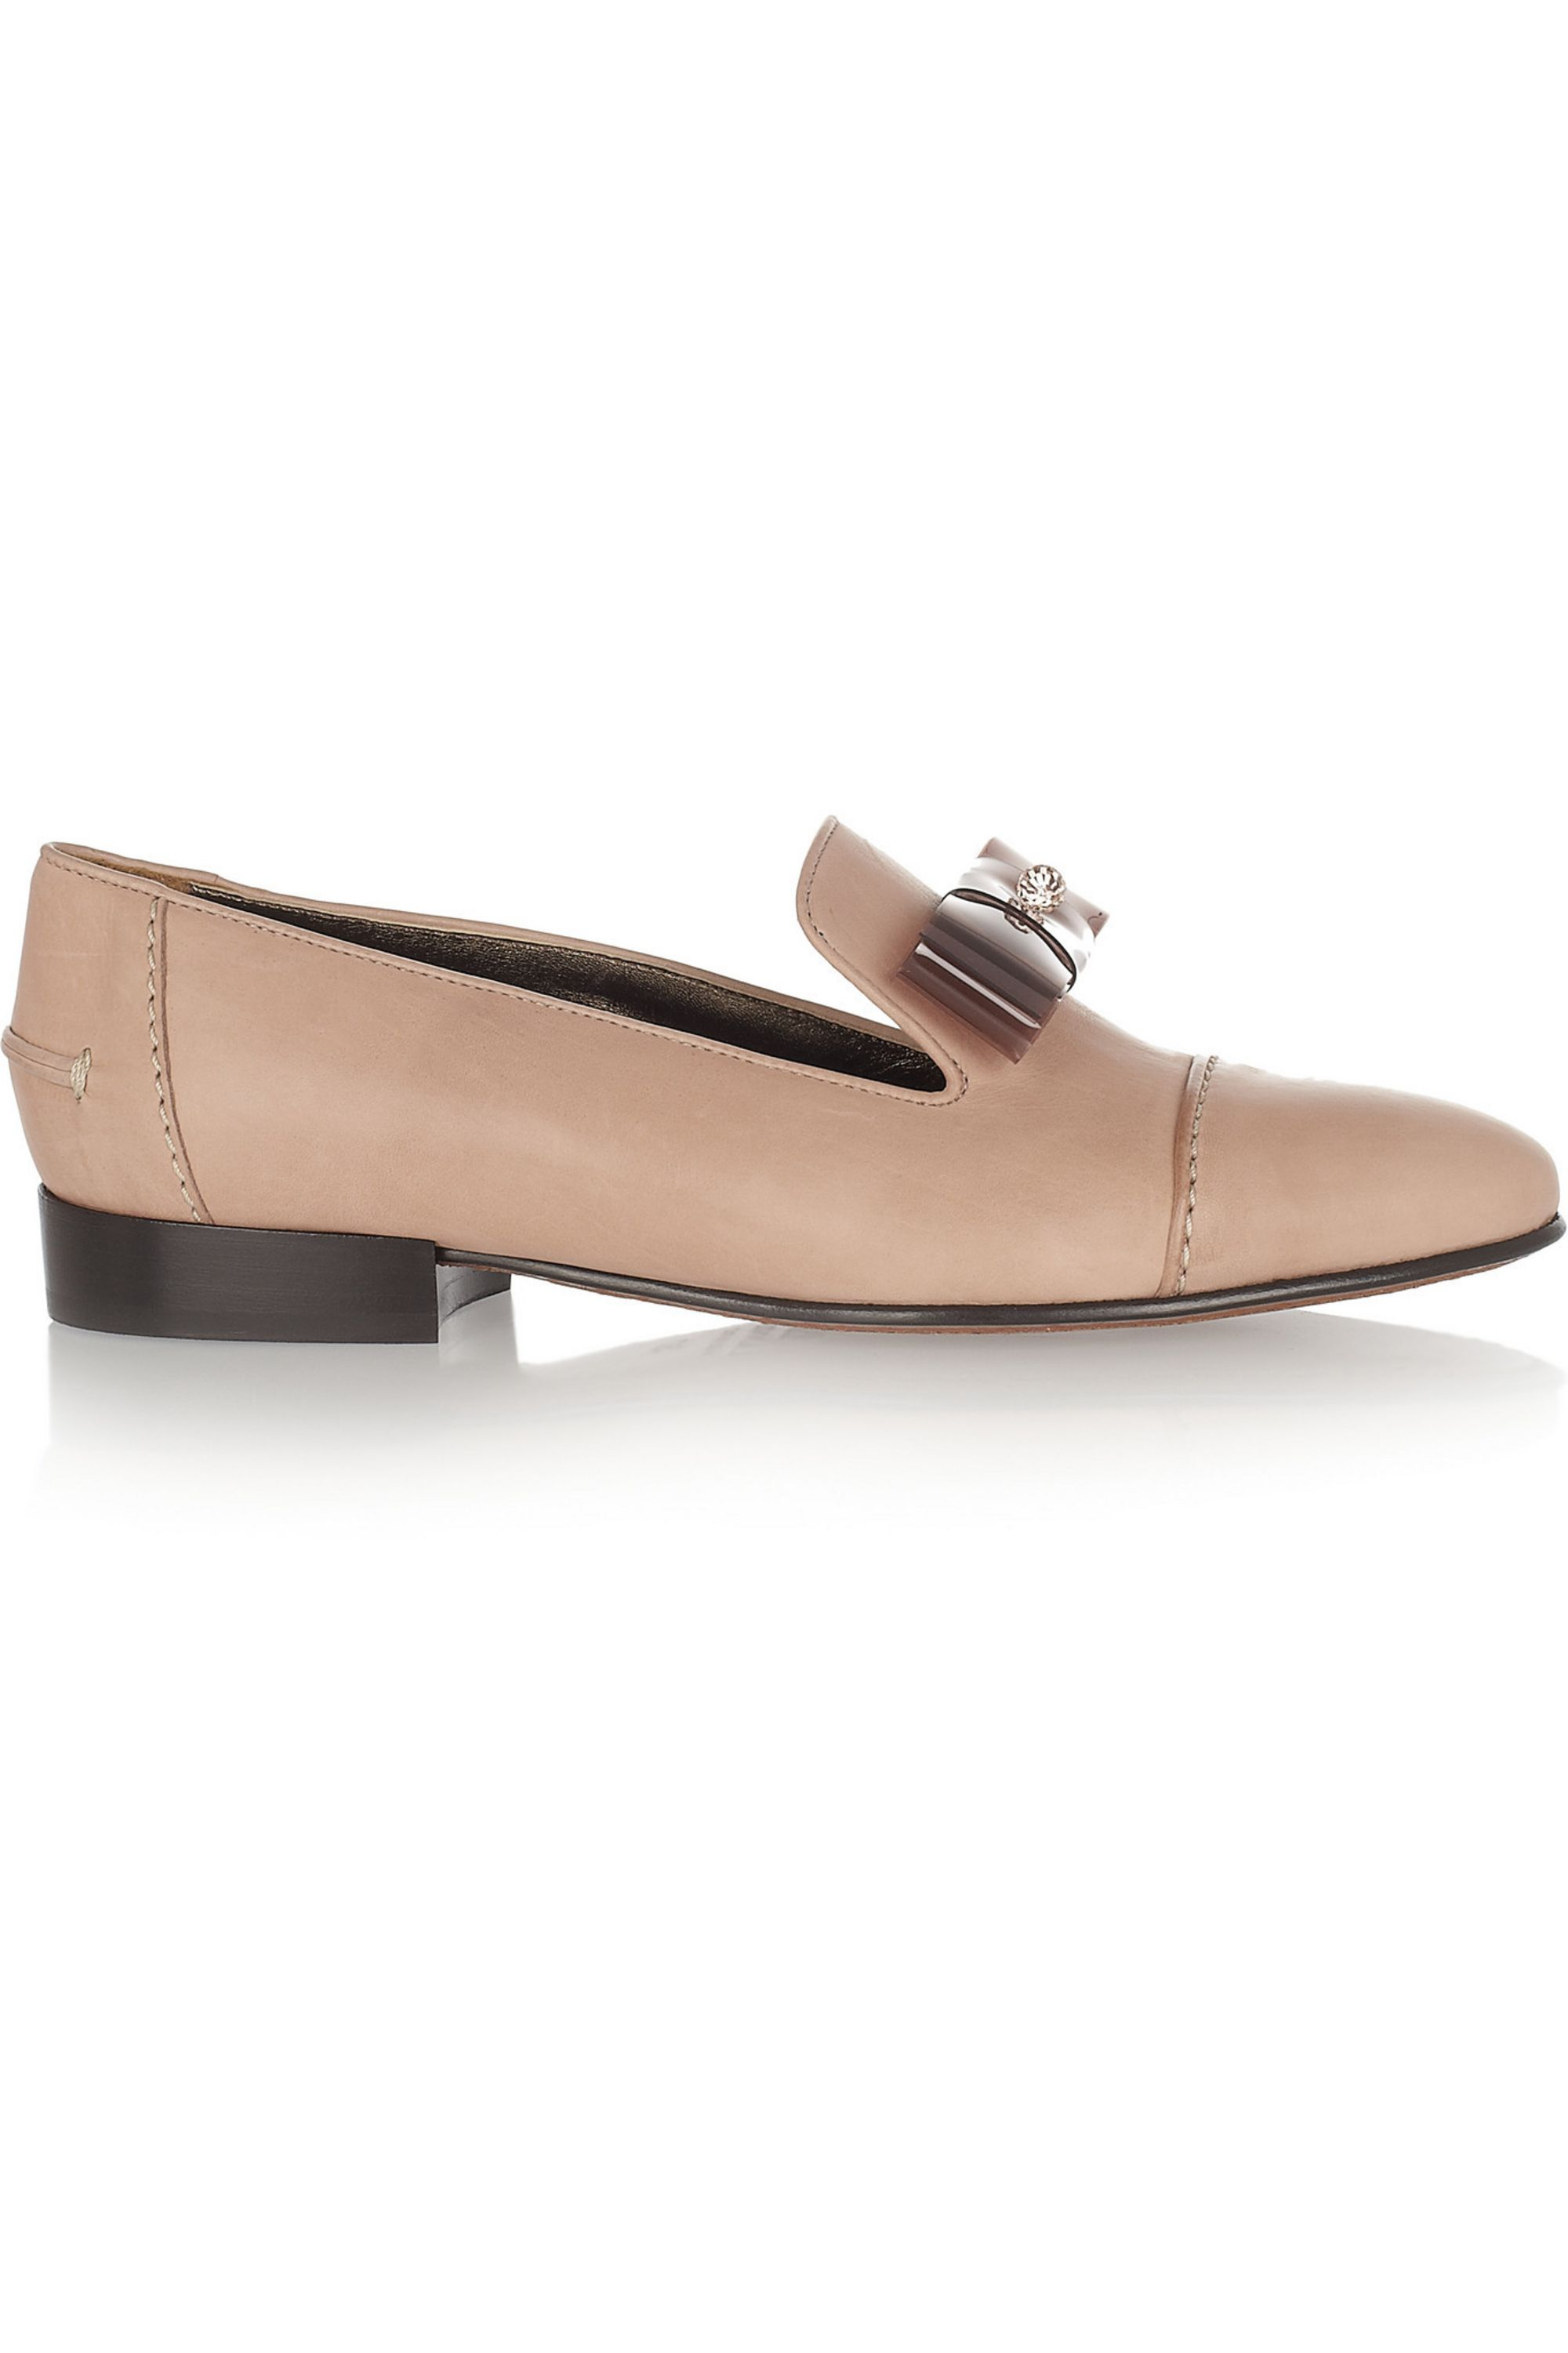 Lanvin Bow-detailed leather loafers